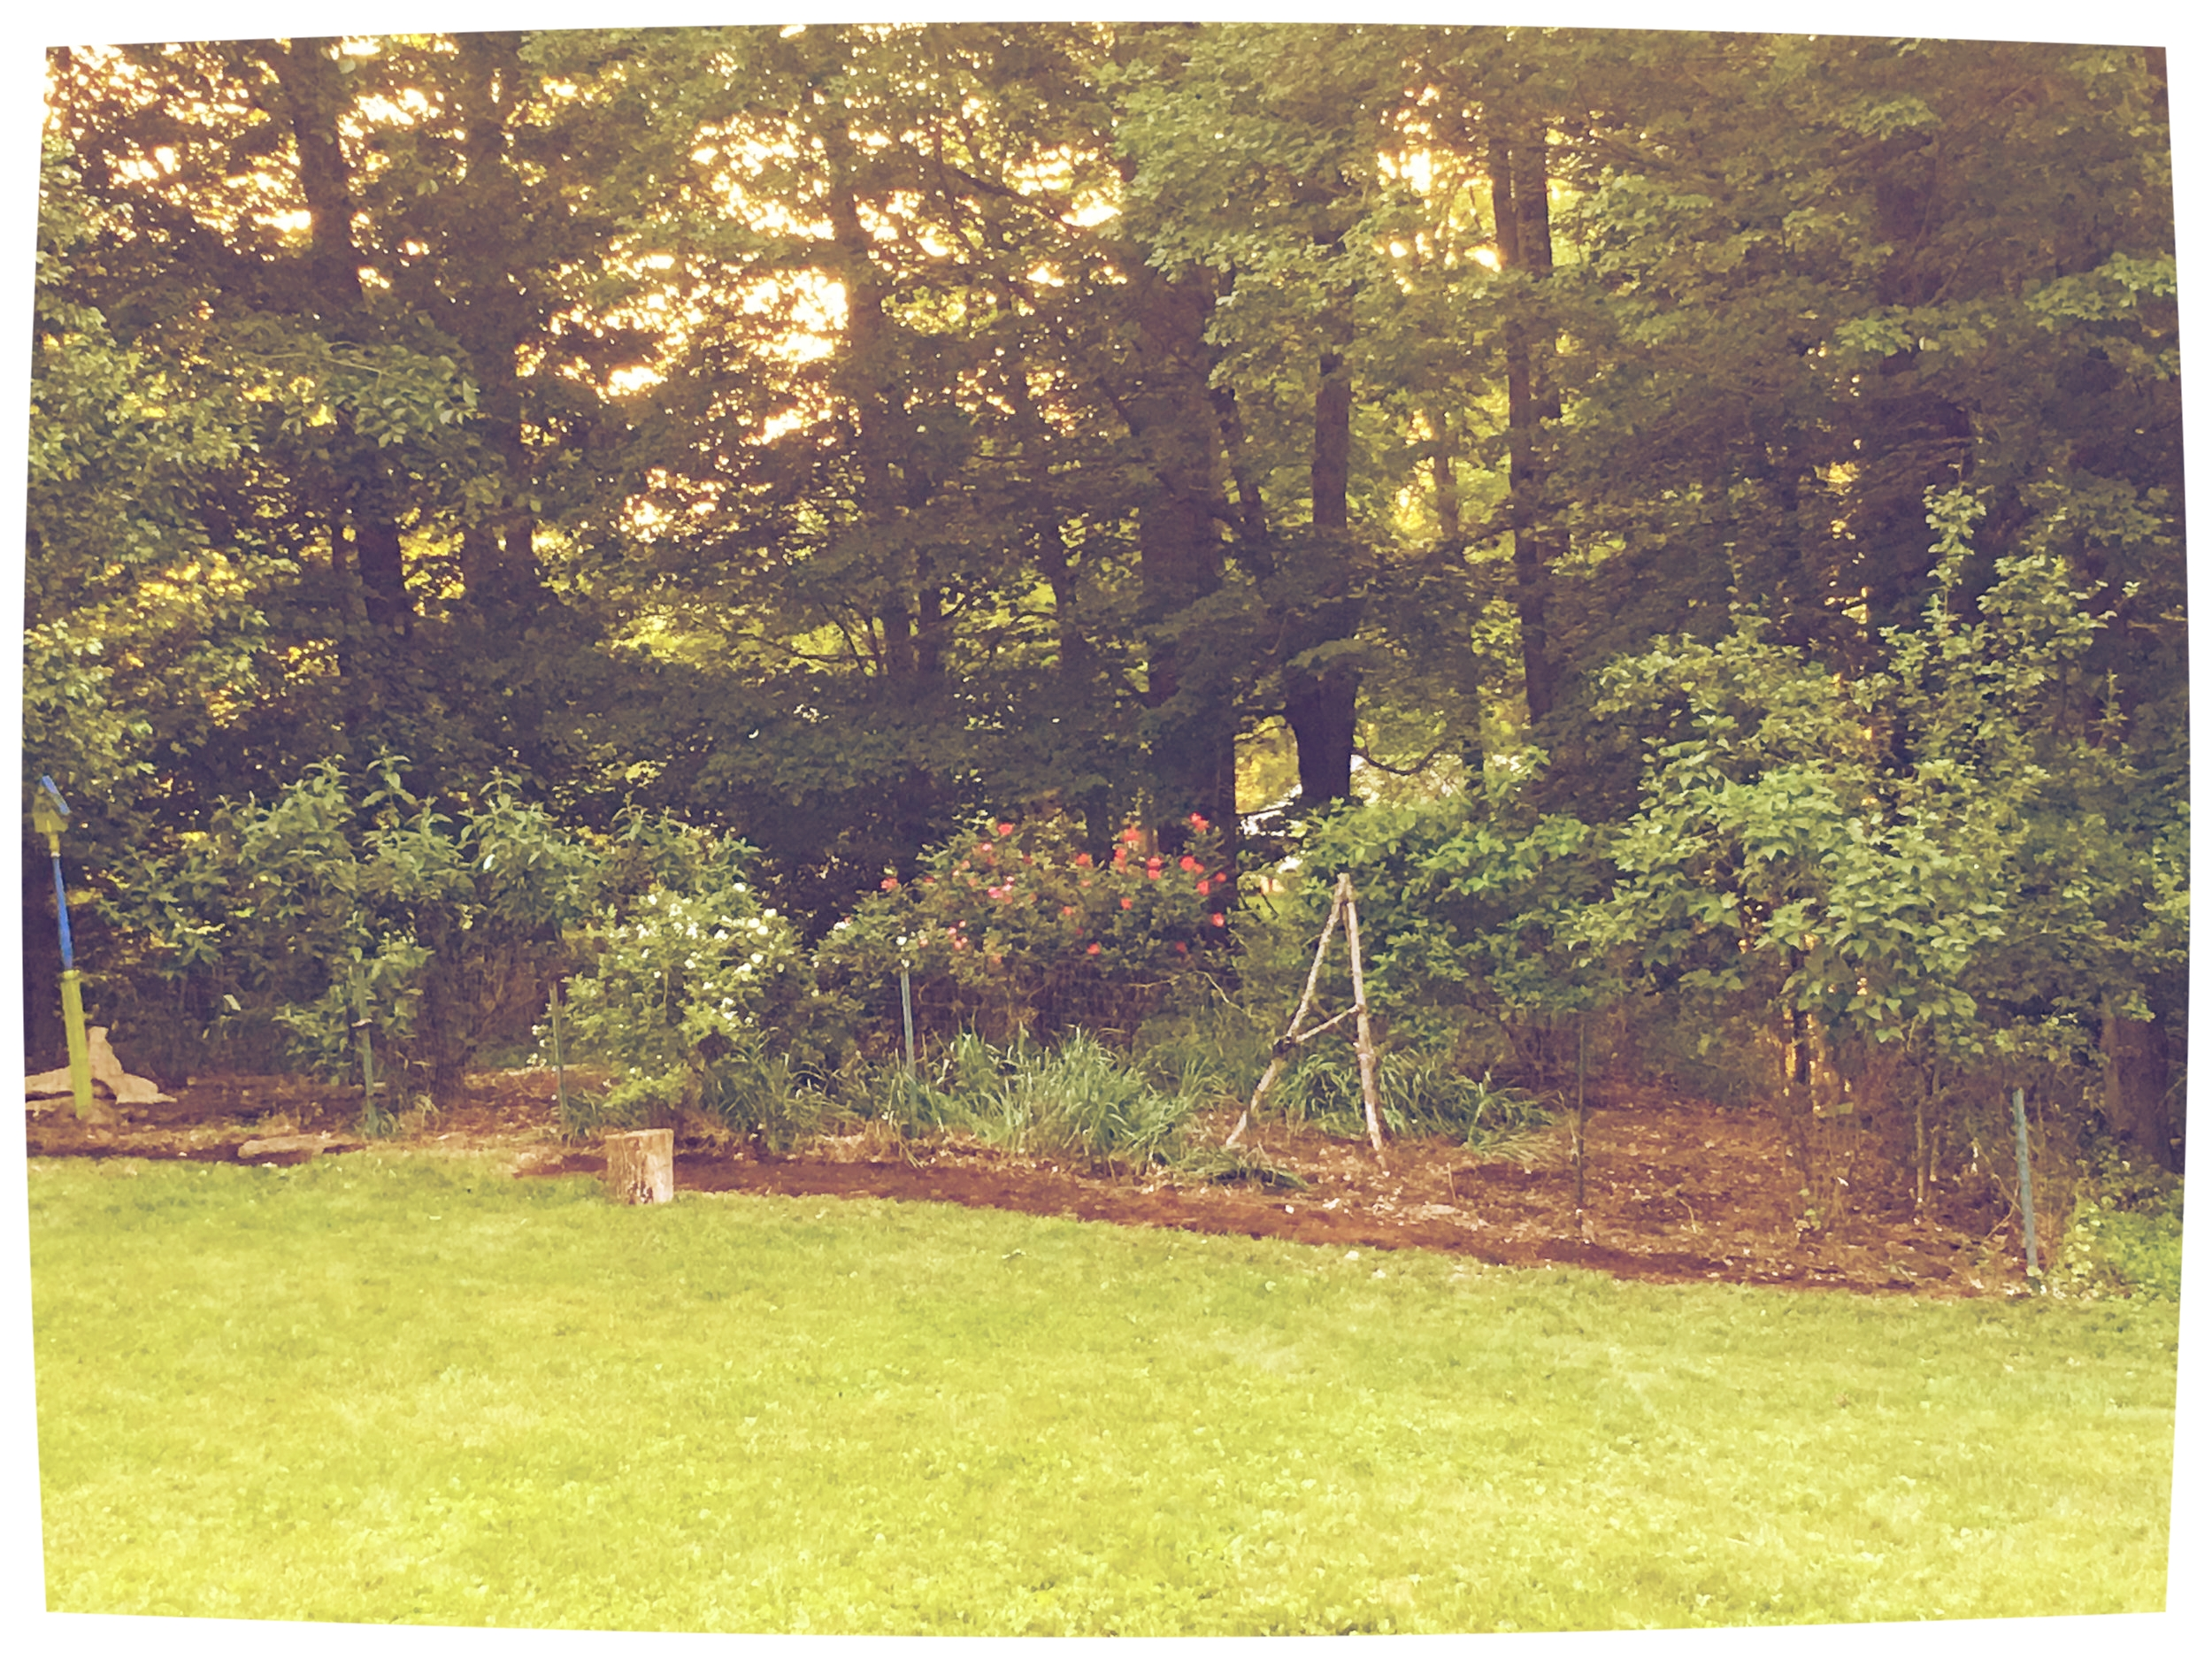 Butterfly bush (on left) with the new patches of wild flower beds to begin replacing it.